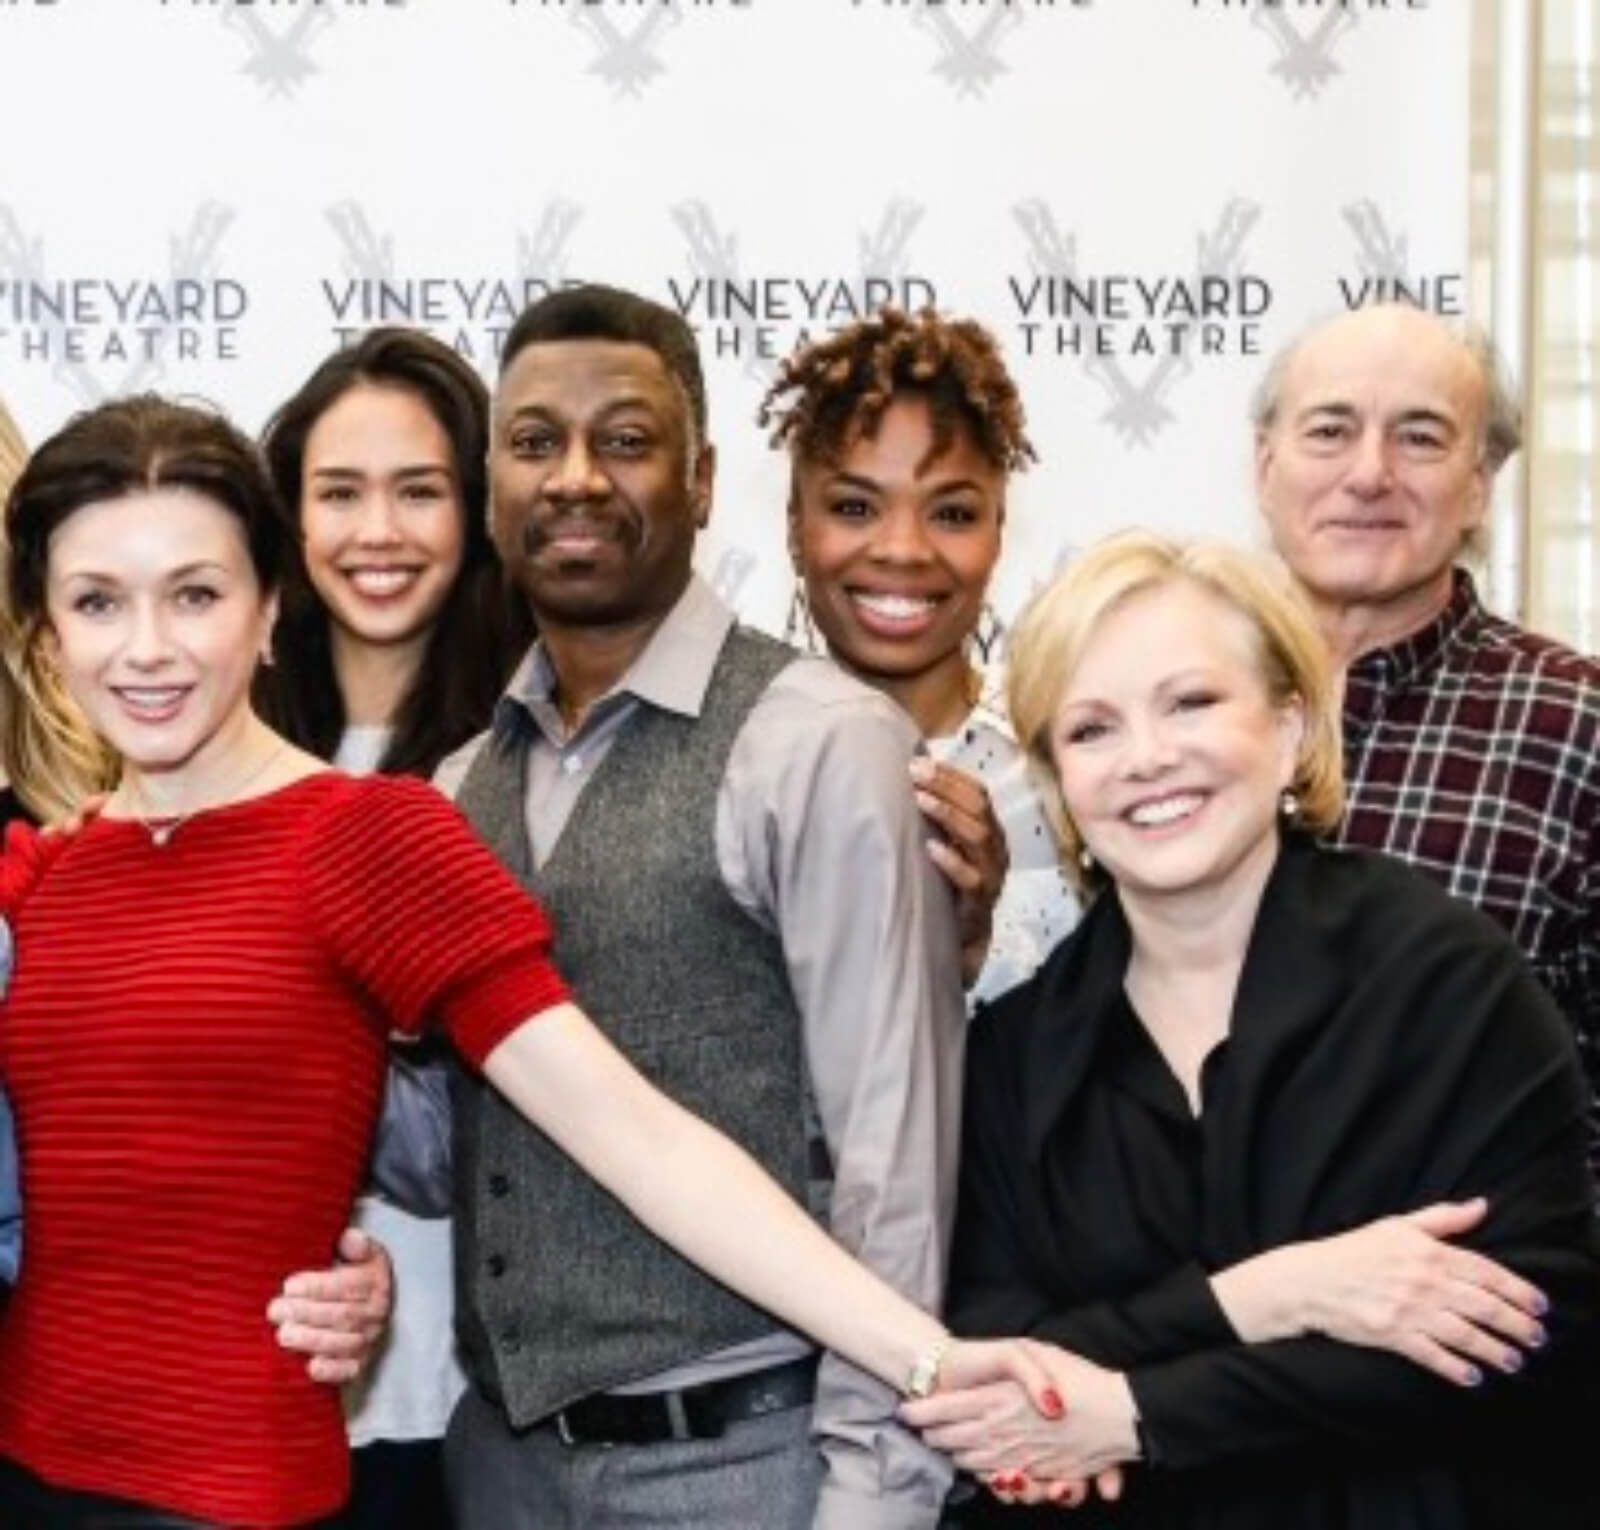 Irina Dvorovenko, Maira Barriga, Teagle F. Bougere, Erin N. Moore, Susan Stroman, and Peter Friedman in front of a step-and-repeat with Vineyard Theatre's logo.